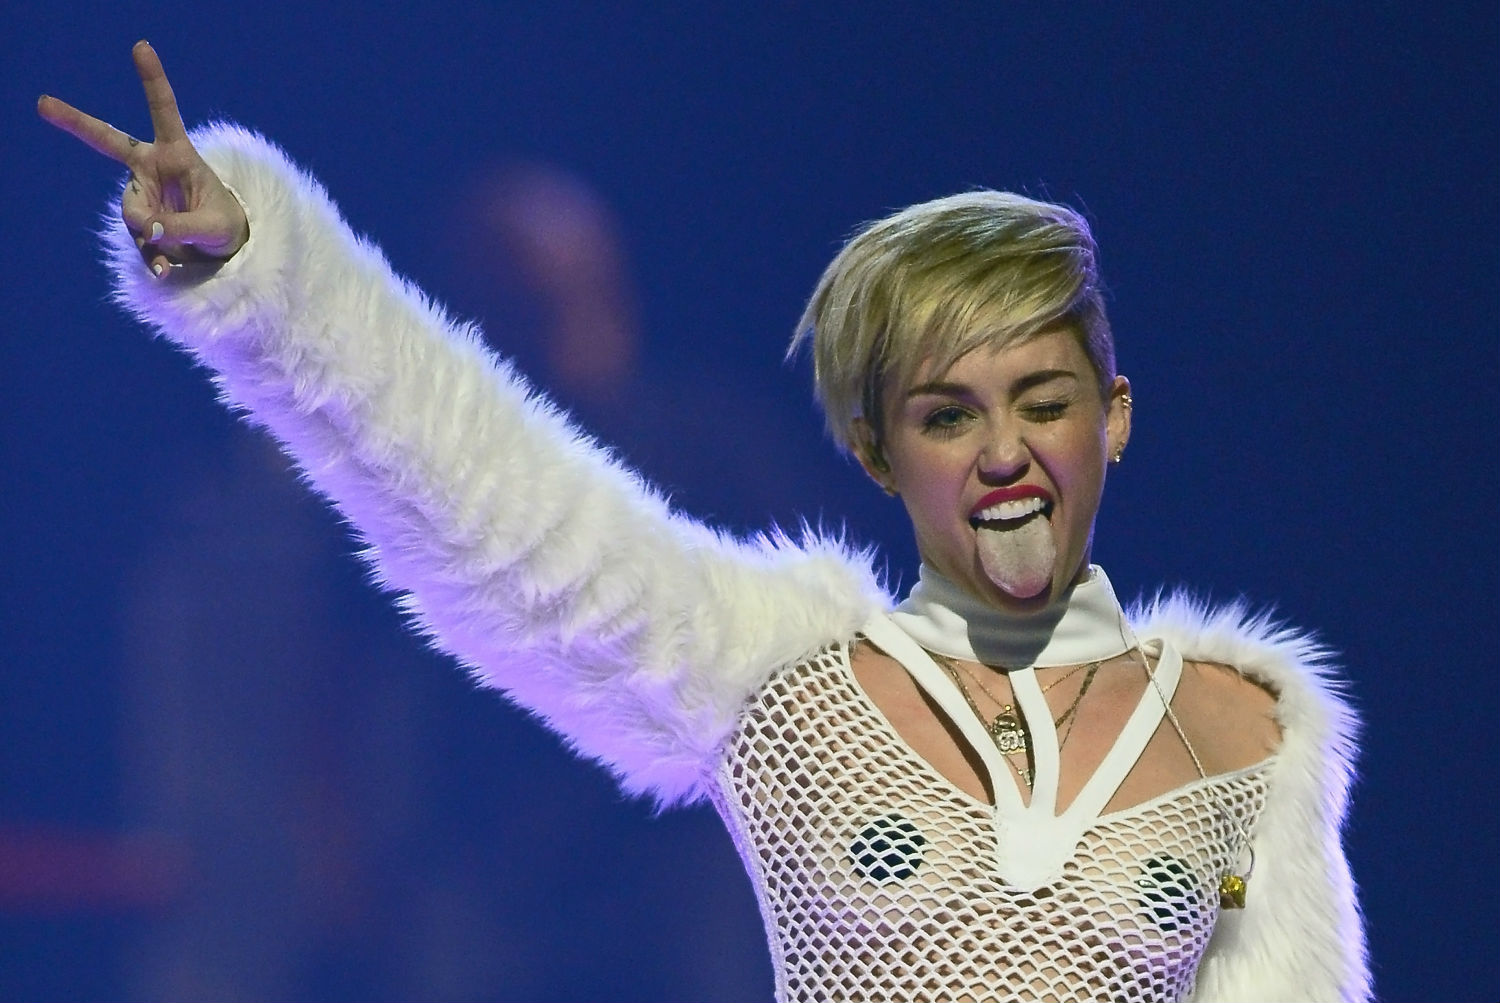 Miley cyrus told women they don't have to be gay because there are good men out there